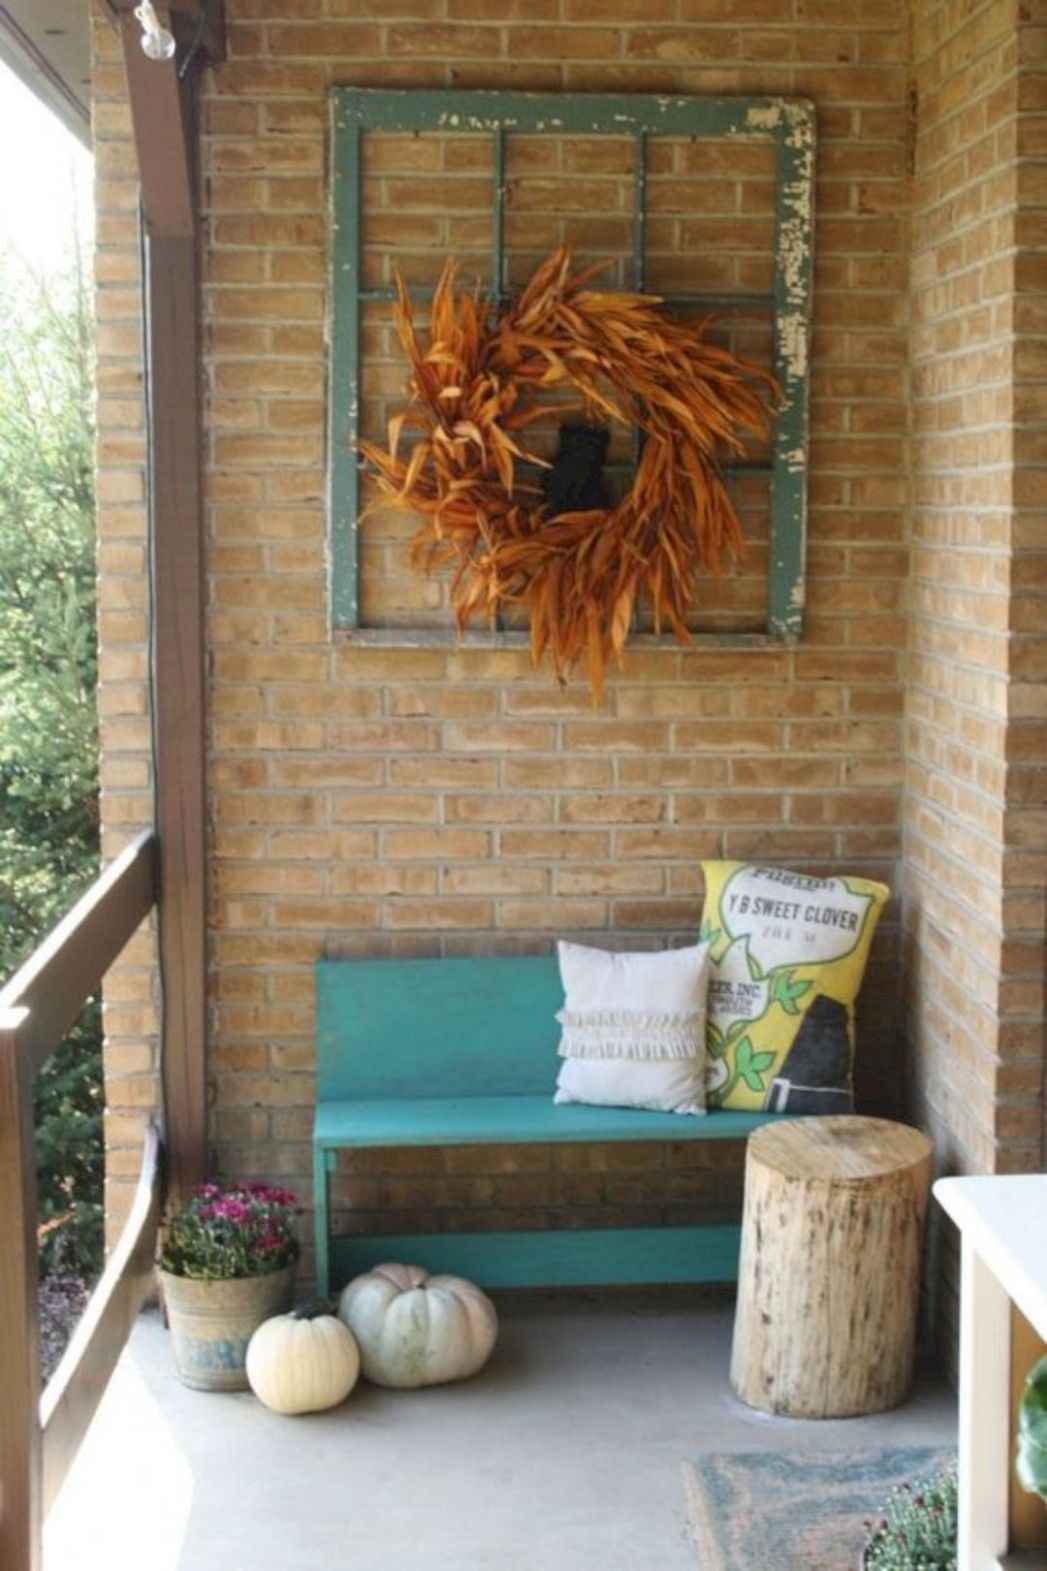 12 Unique Primitive Decorating Ideas | Porch wall decor, Porch ...